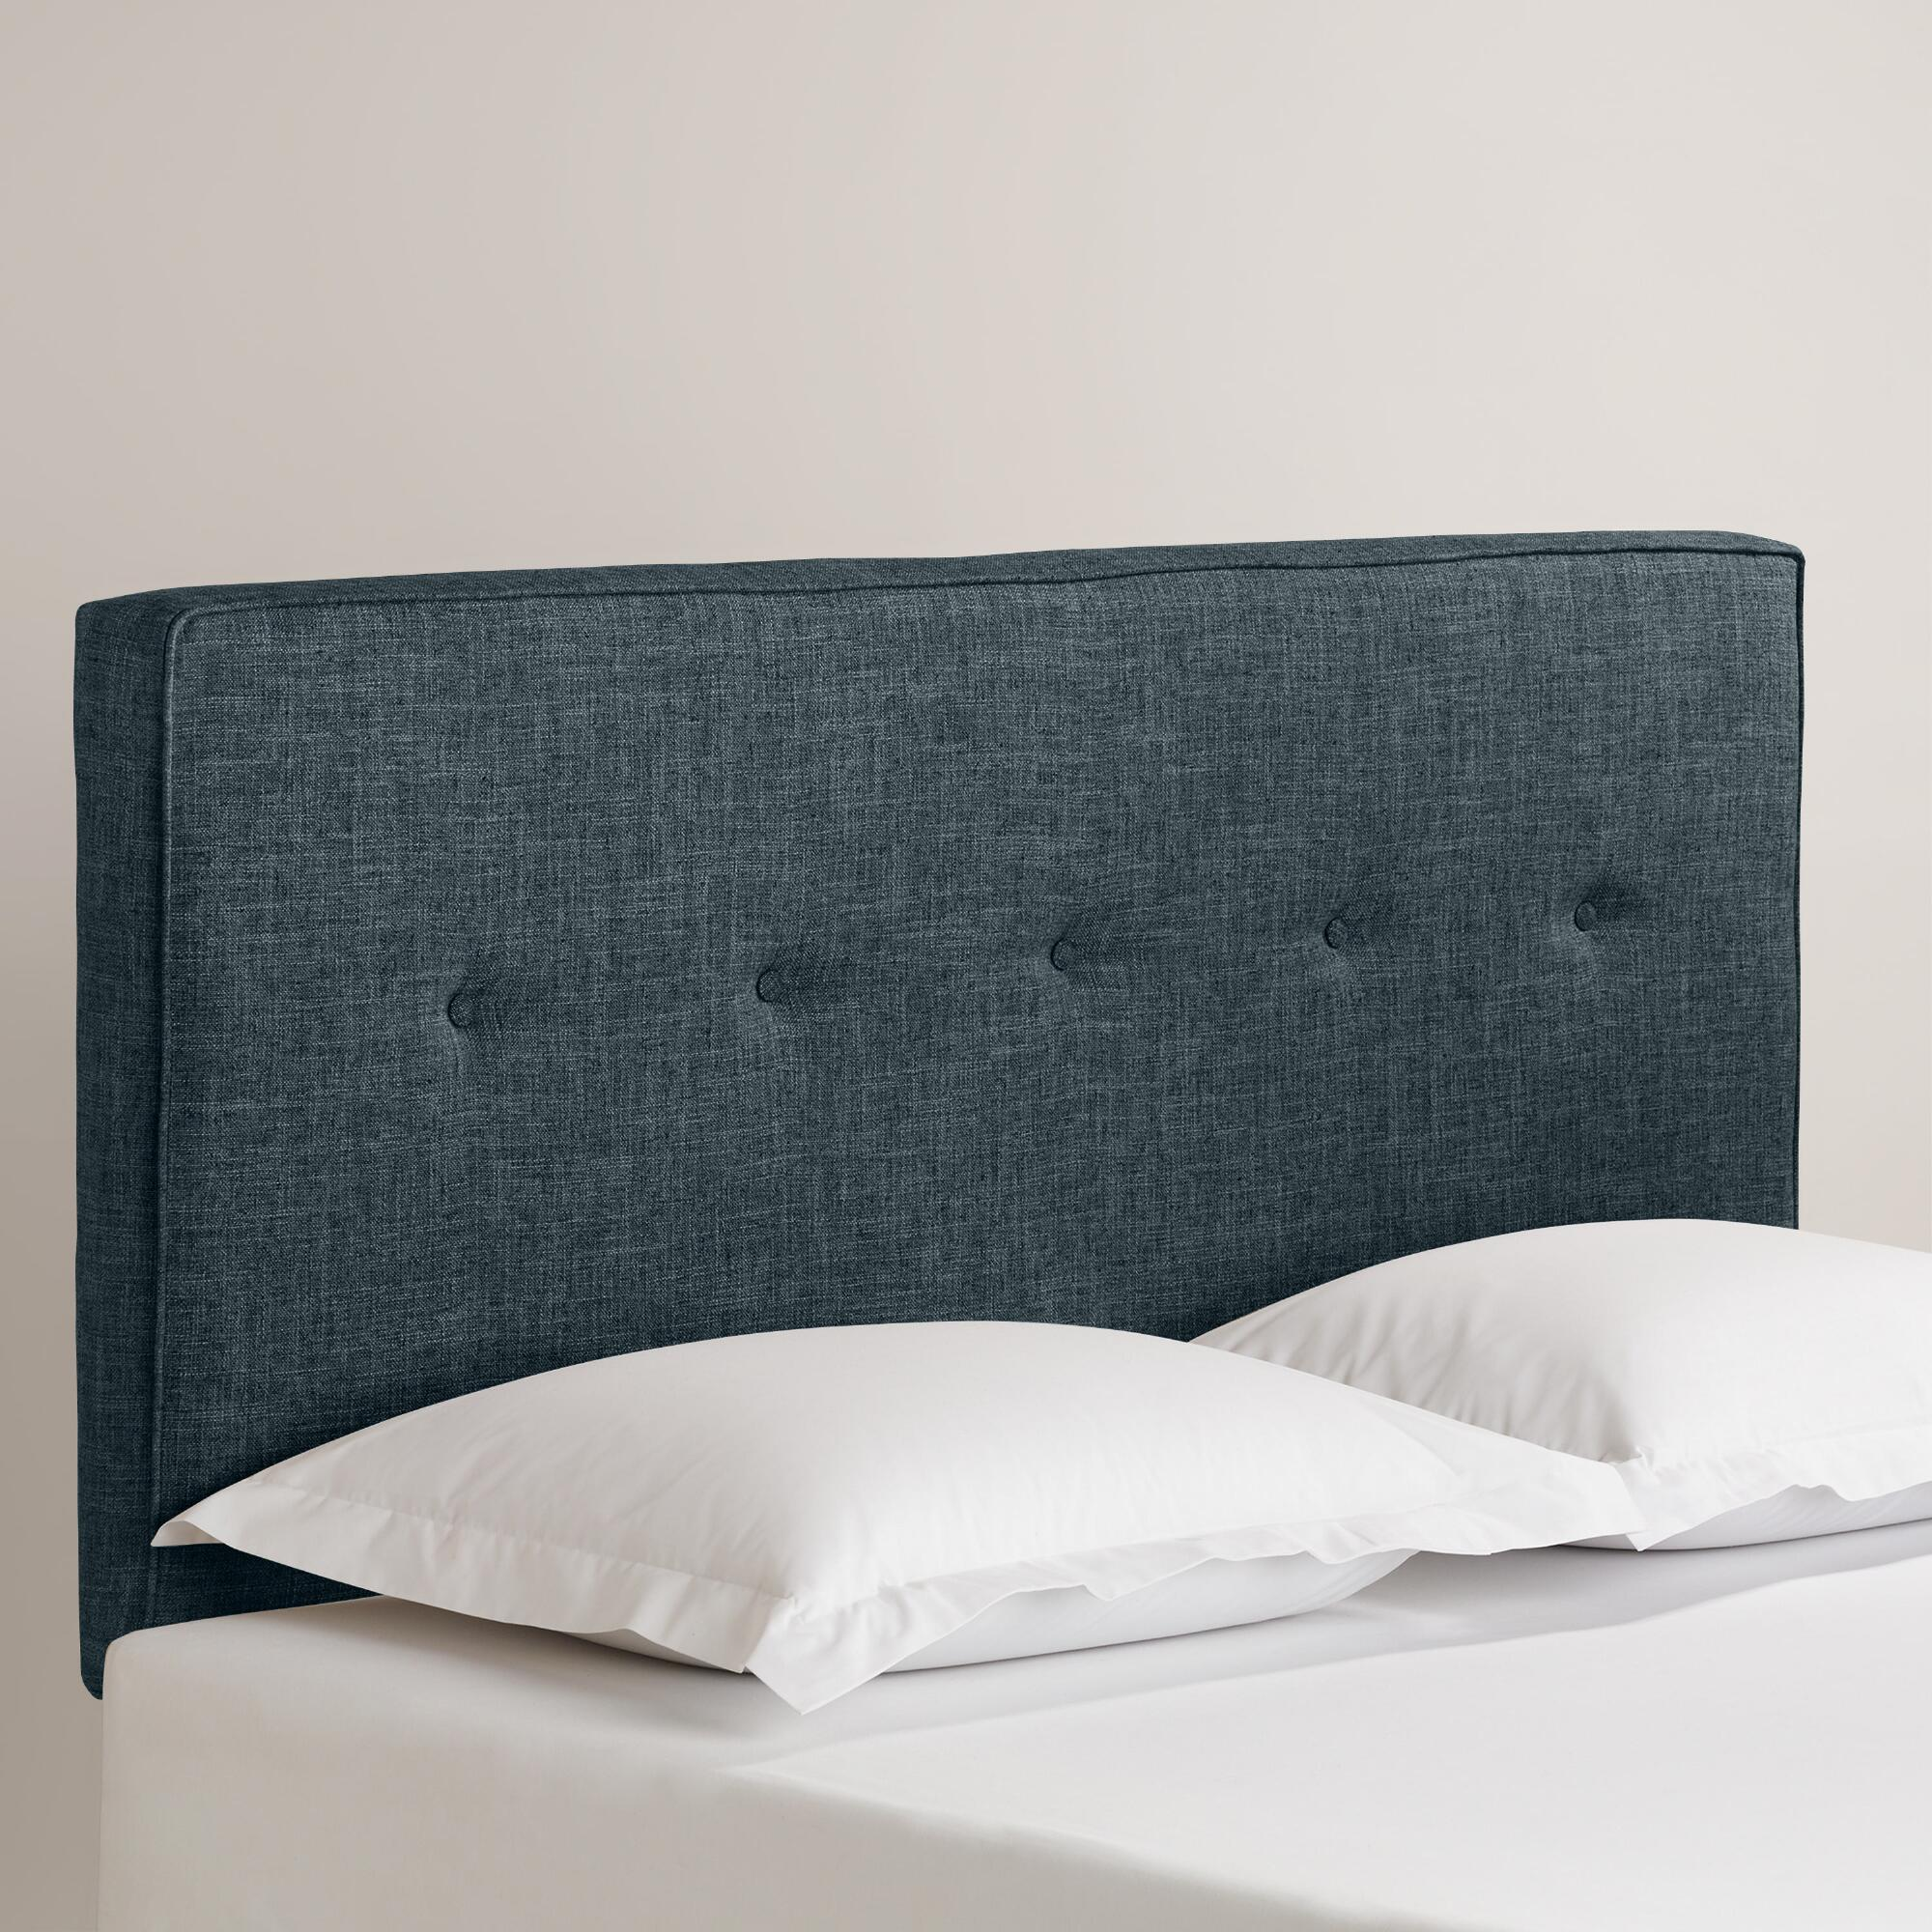 Linen Donnon Upholstered Headboard: Gray - Fabric - King Headboard by World Market Charcoal/King